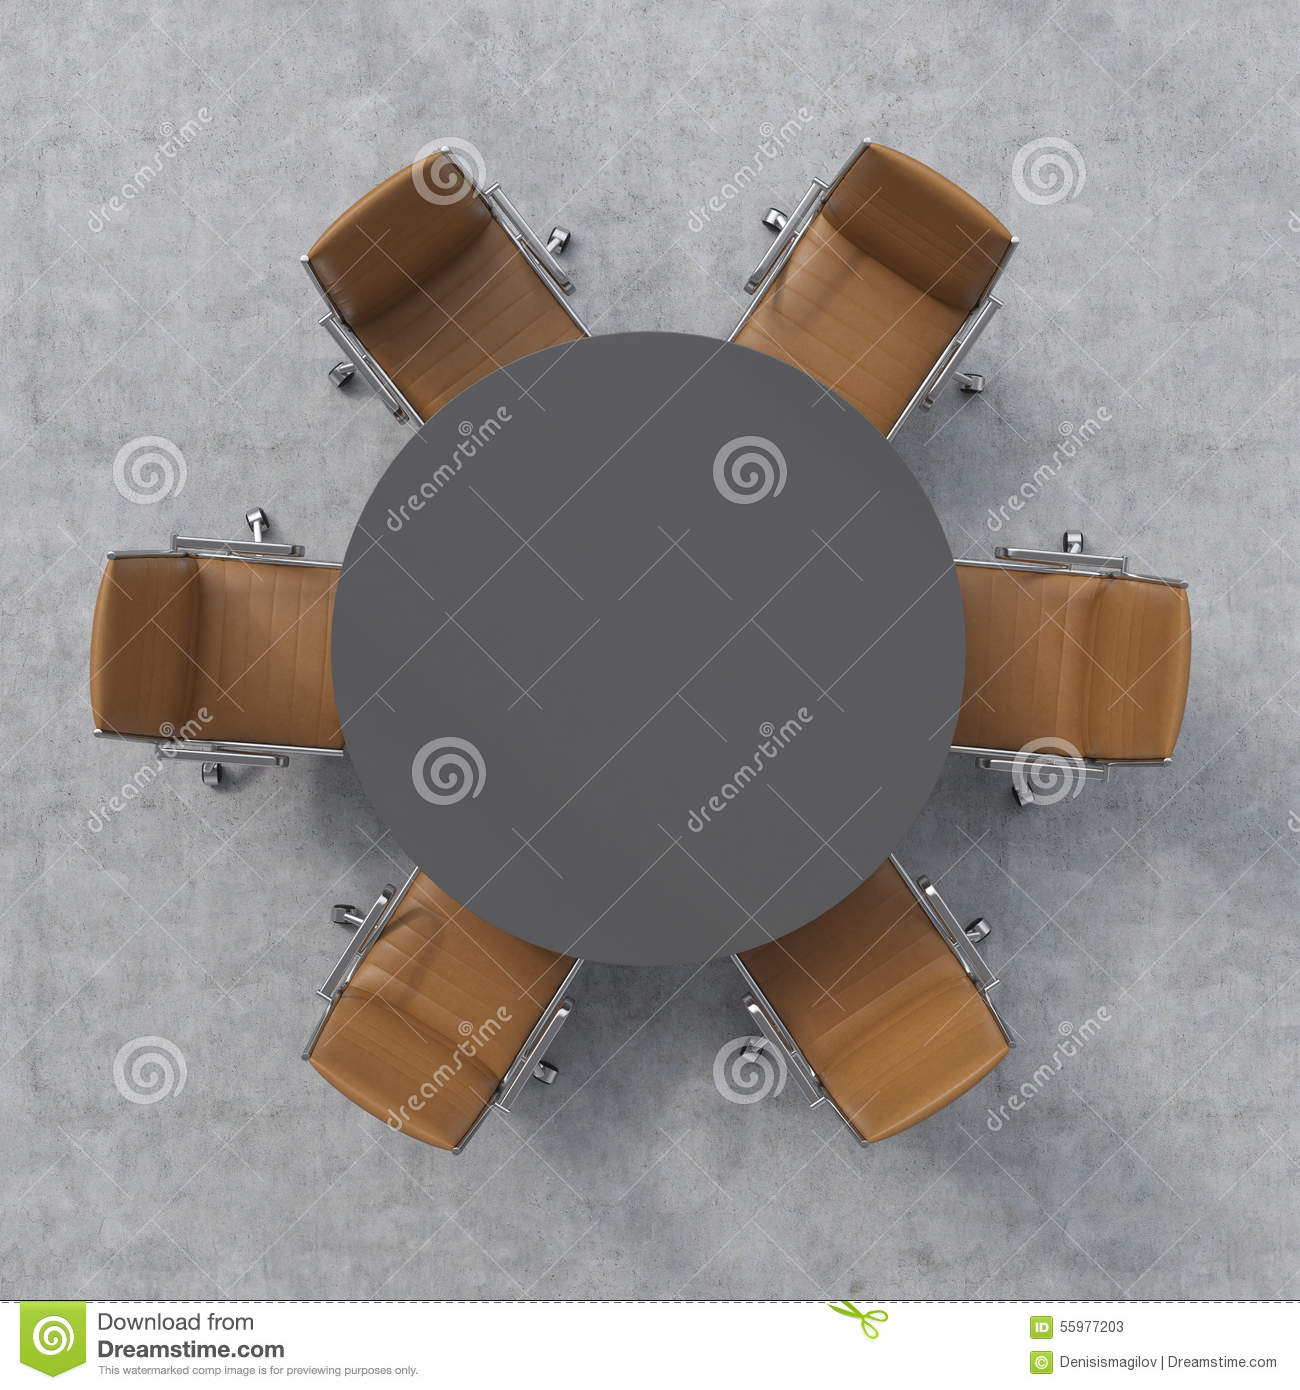 Top View Of A Conference Room A Dark Grey Round Table And Six Brown Leather Chairs Around 3d